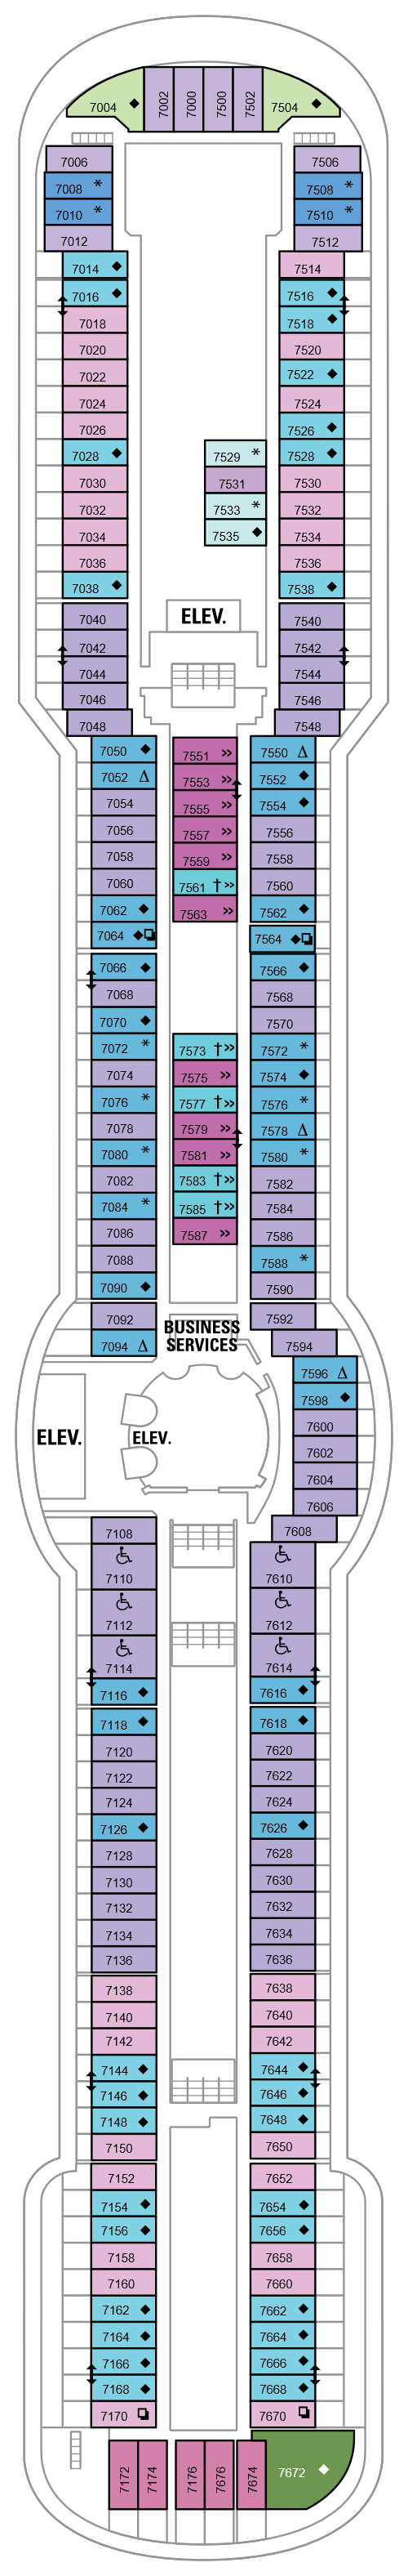 Serenade Of The Seas Deck 7 layout